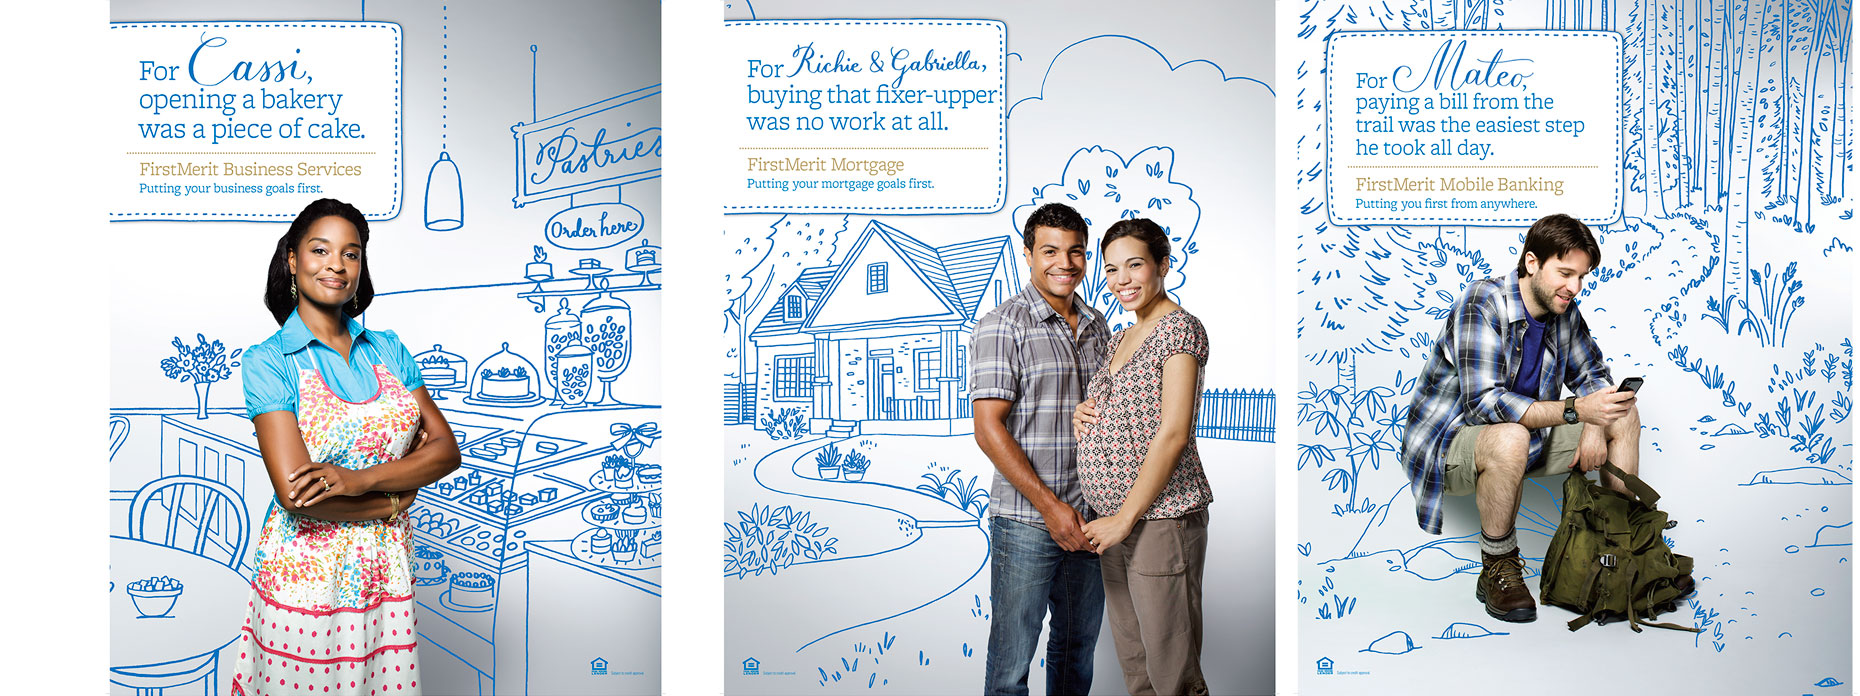 Photo illustrations of customers for FirstMerit bank